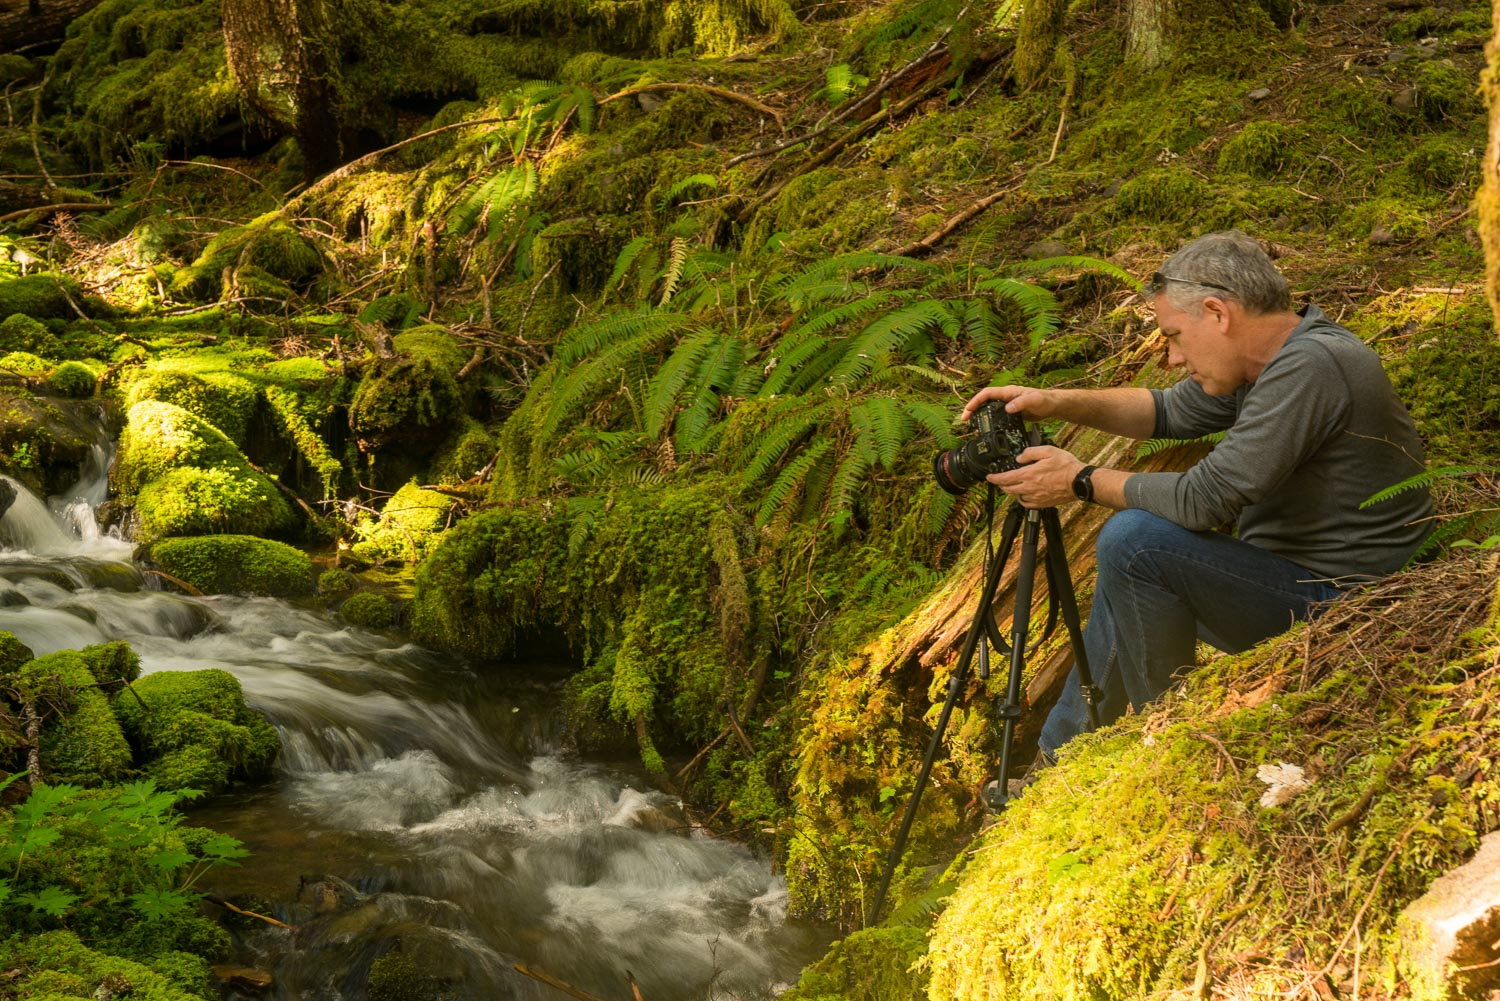 photographer setting up shot with tripod along mossy creek